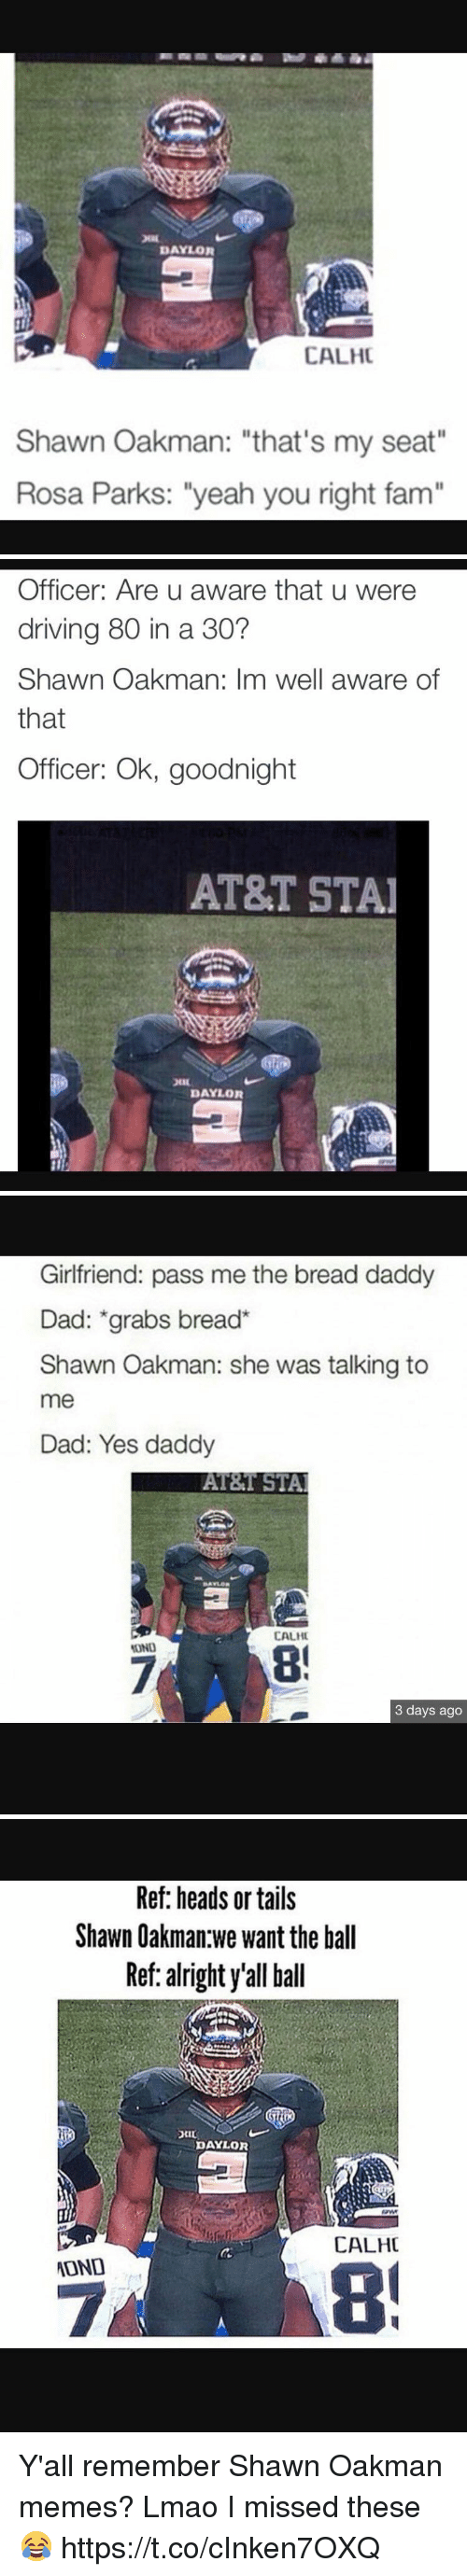 """Shawn Oakman: DAYLOR  CALHC  Shawn Oakman: """"that's my seat""""  Rosa Parks: """"yeah you right fam""""   Officer: Are u aware that u were  driving 80 in a 30?  Shawn Oakman: Im well aware of  that  Officer: Ok, goodnight  AT&T STAI  DAYLOR   Girlfriend: pass me the bread daddy  Dad: grabs bread  Shawn Oakman: she was talking to  me  Dad: Yes daddy  AT&T STAl  CALHU  3 days ago   Ref: heads or tails  Shawn Oakman we want the ball  Ref: alright y'all ball  DAYLOR  CALHC  ATOND Y'all remember Shawn Oakman memes? Lmao I missed these😂 https://t.co/cInken7OXQ"""